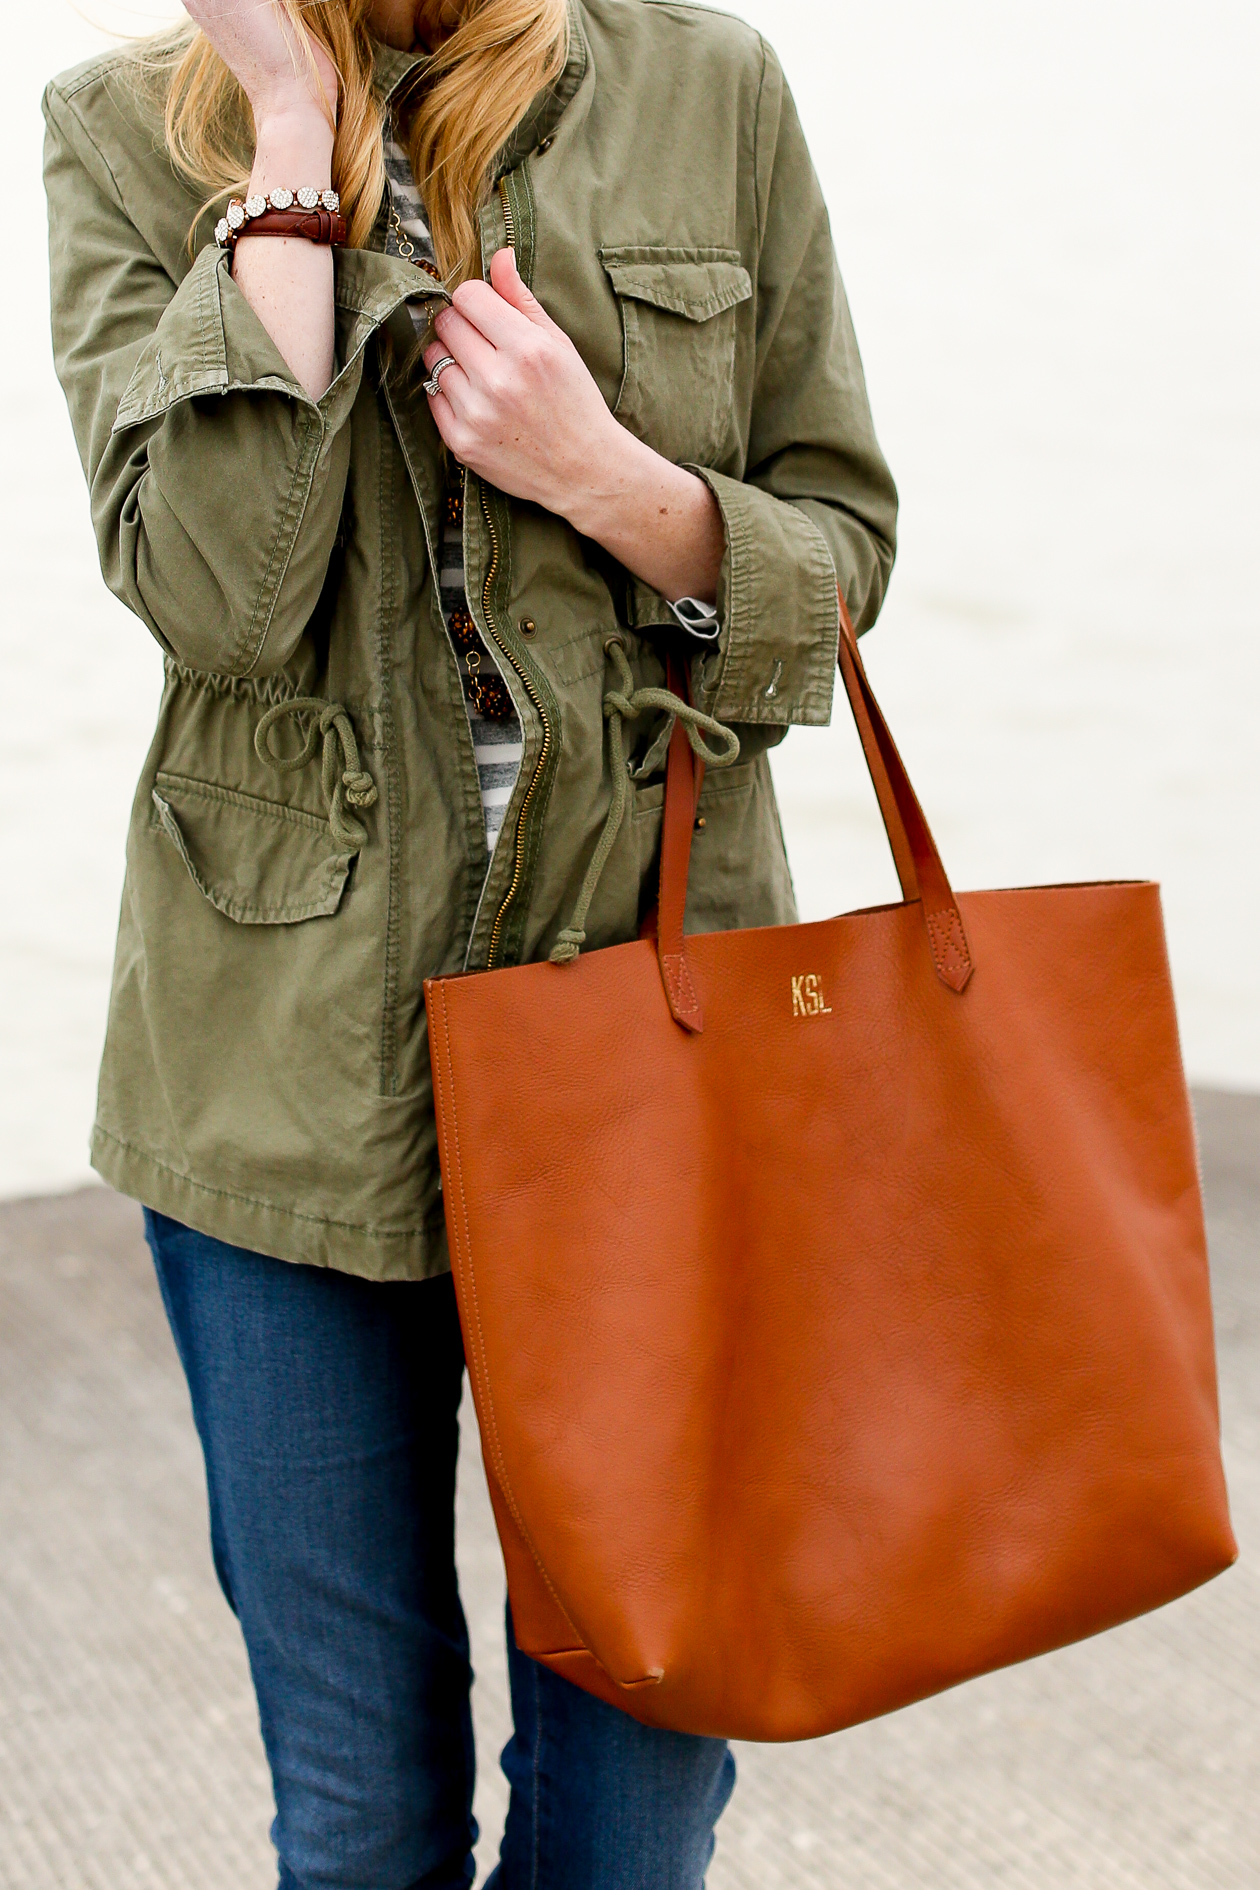 Madewell Transport Tote-41